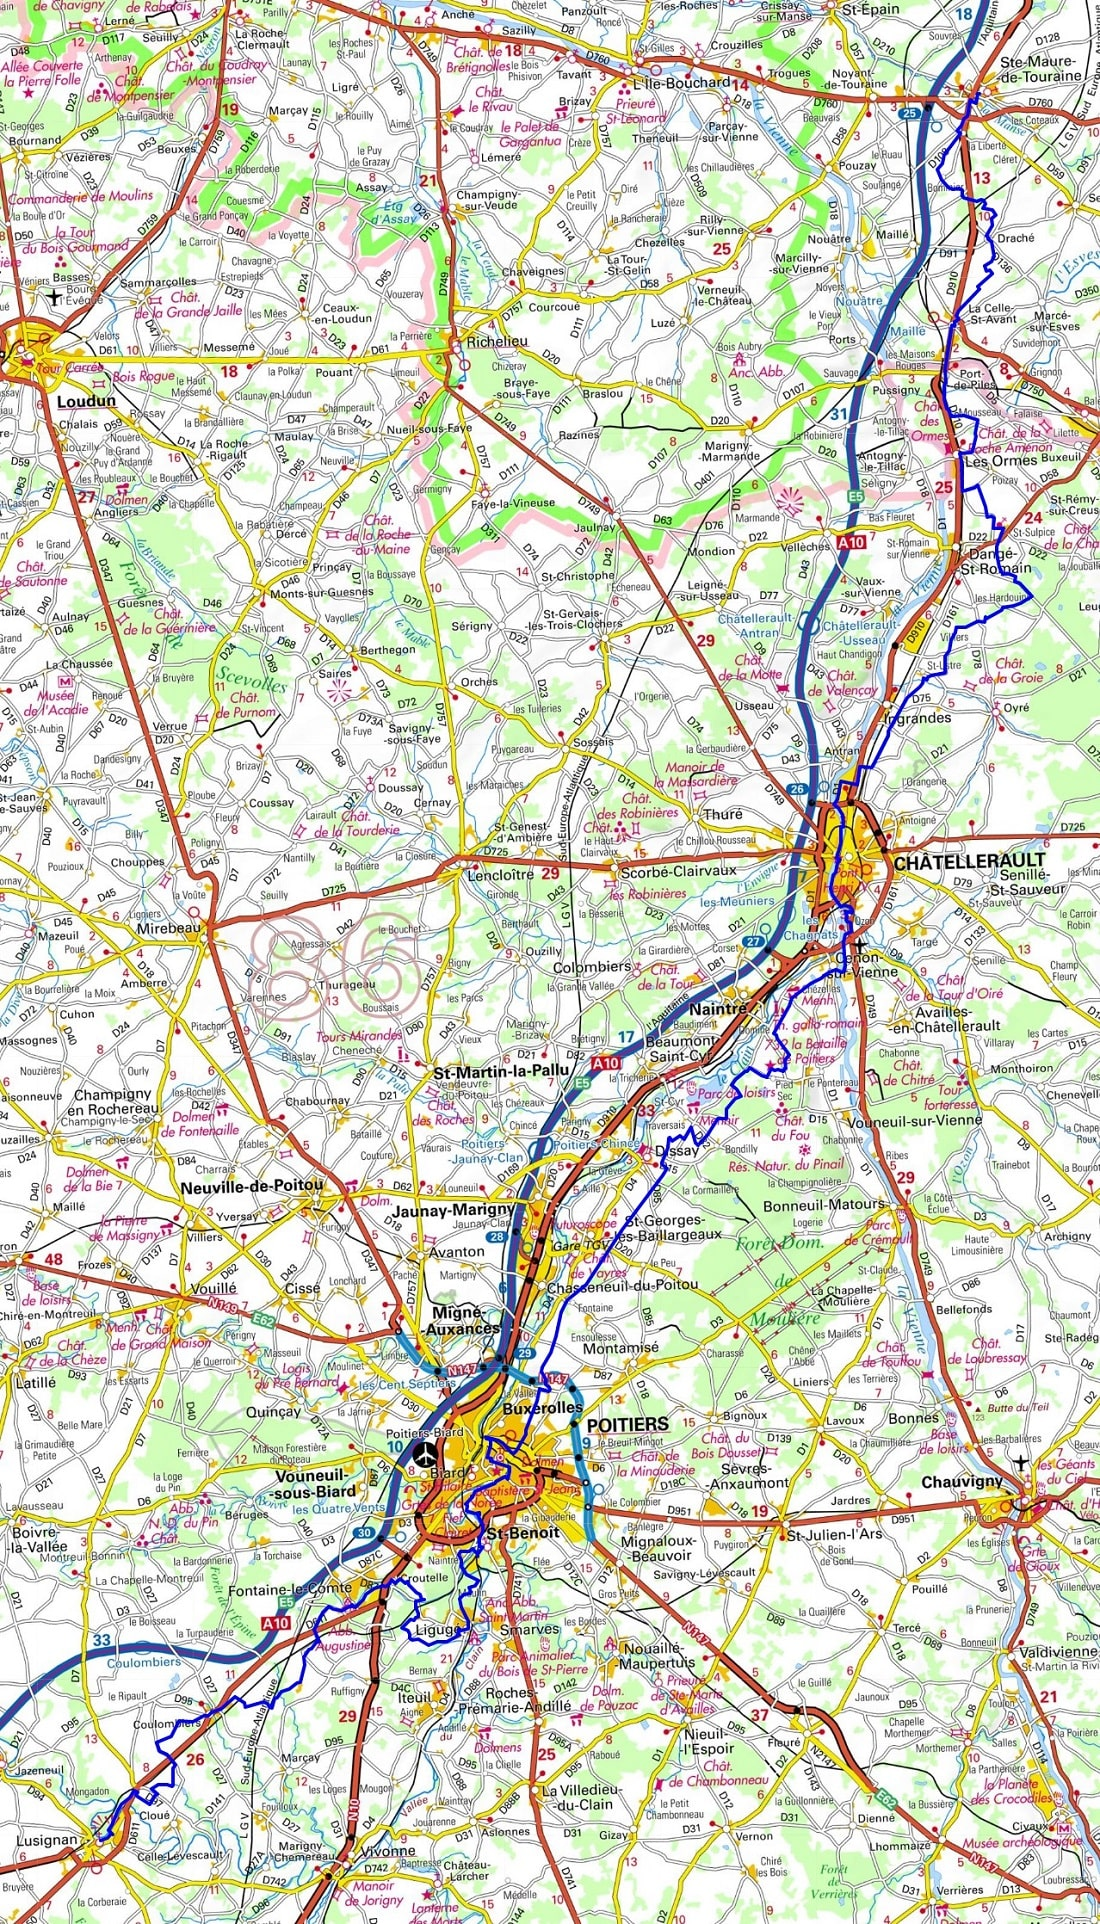 GR655 Hiking from Ste-Maure-de-Touraine (Indre-et-Loire) to Lusignan (Vienne)